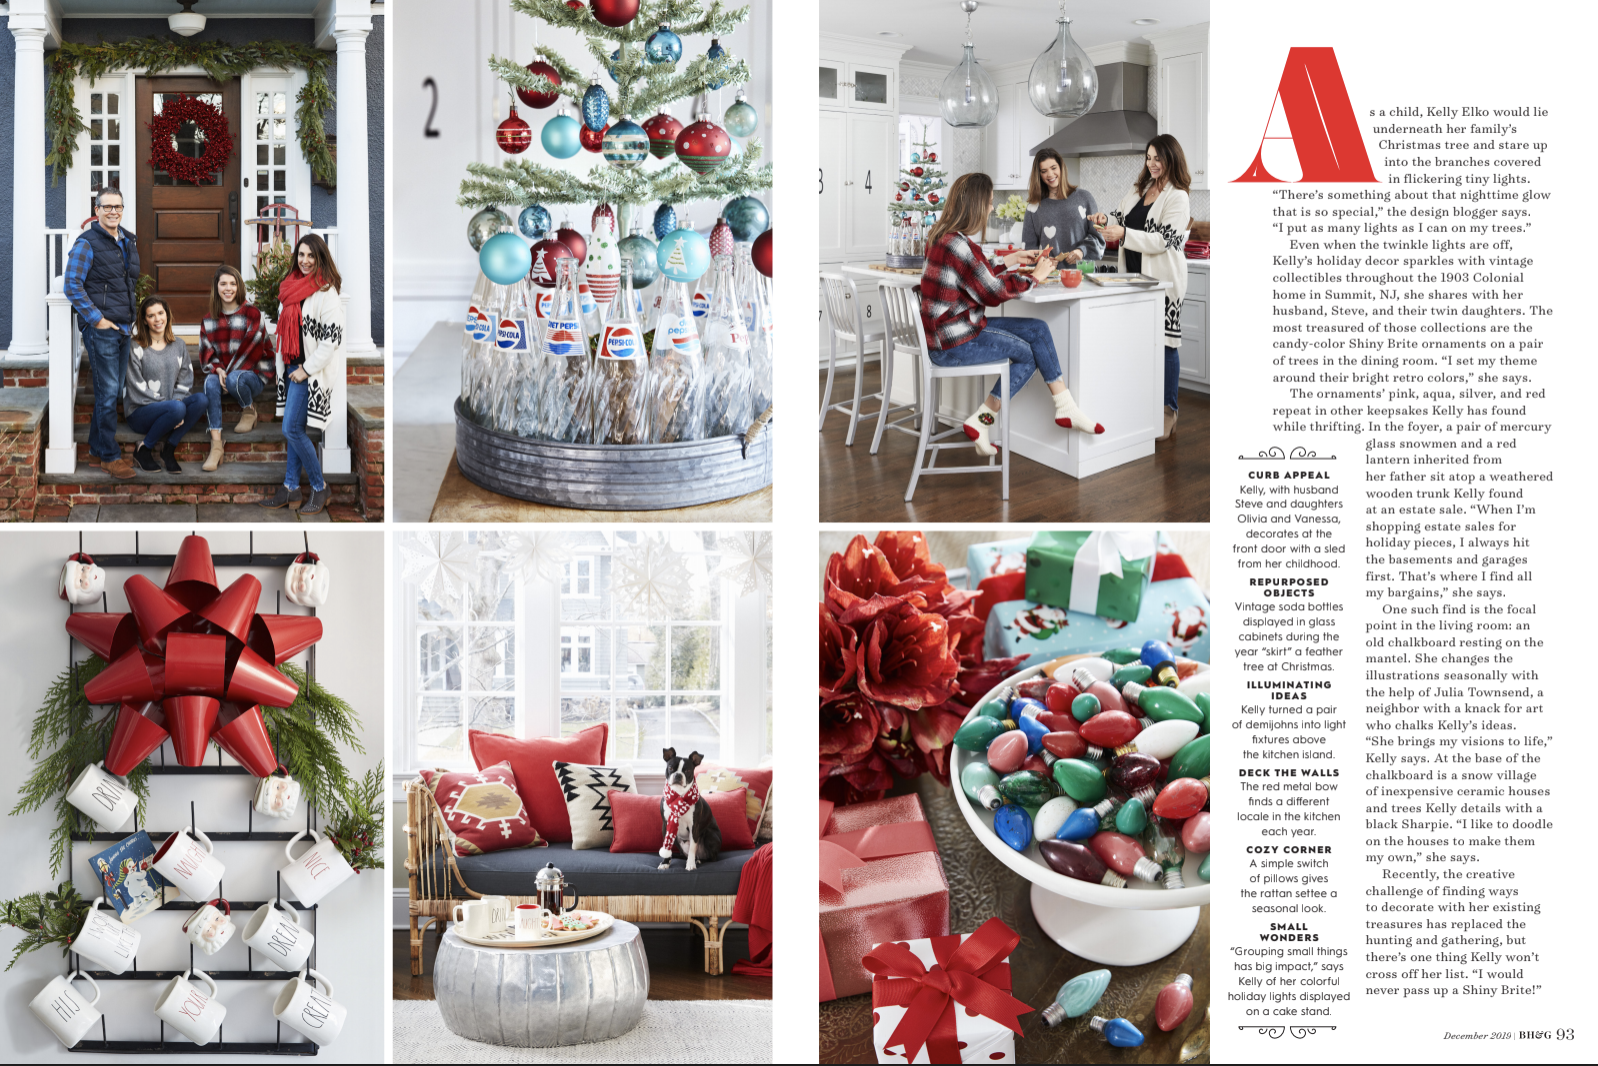 Better Homes & Gardens Christmas feature kellyelko.com #christmasideas #christmasdecor #christmasdecorations #christmashome #christmashometour #christmasporch #christmastree #christmaskitchen #farmhousechristmas #vintagechristmas